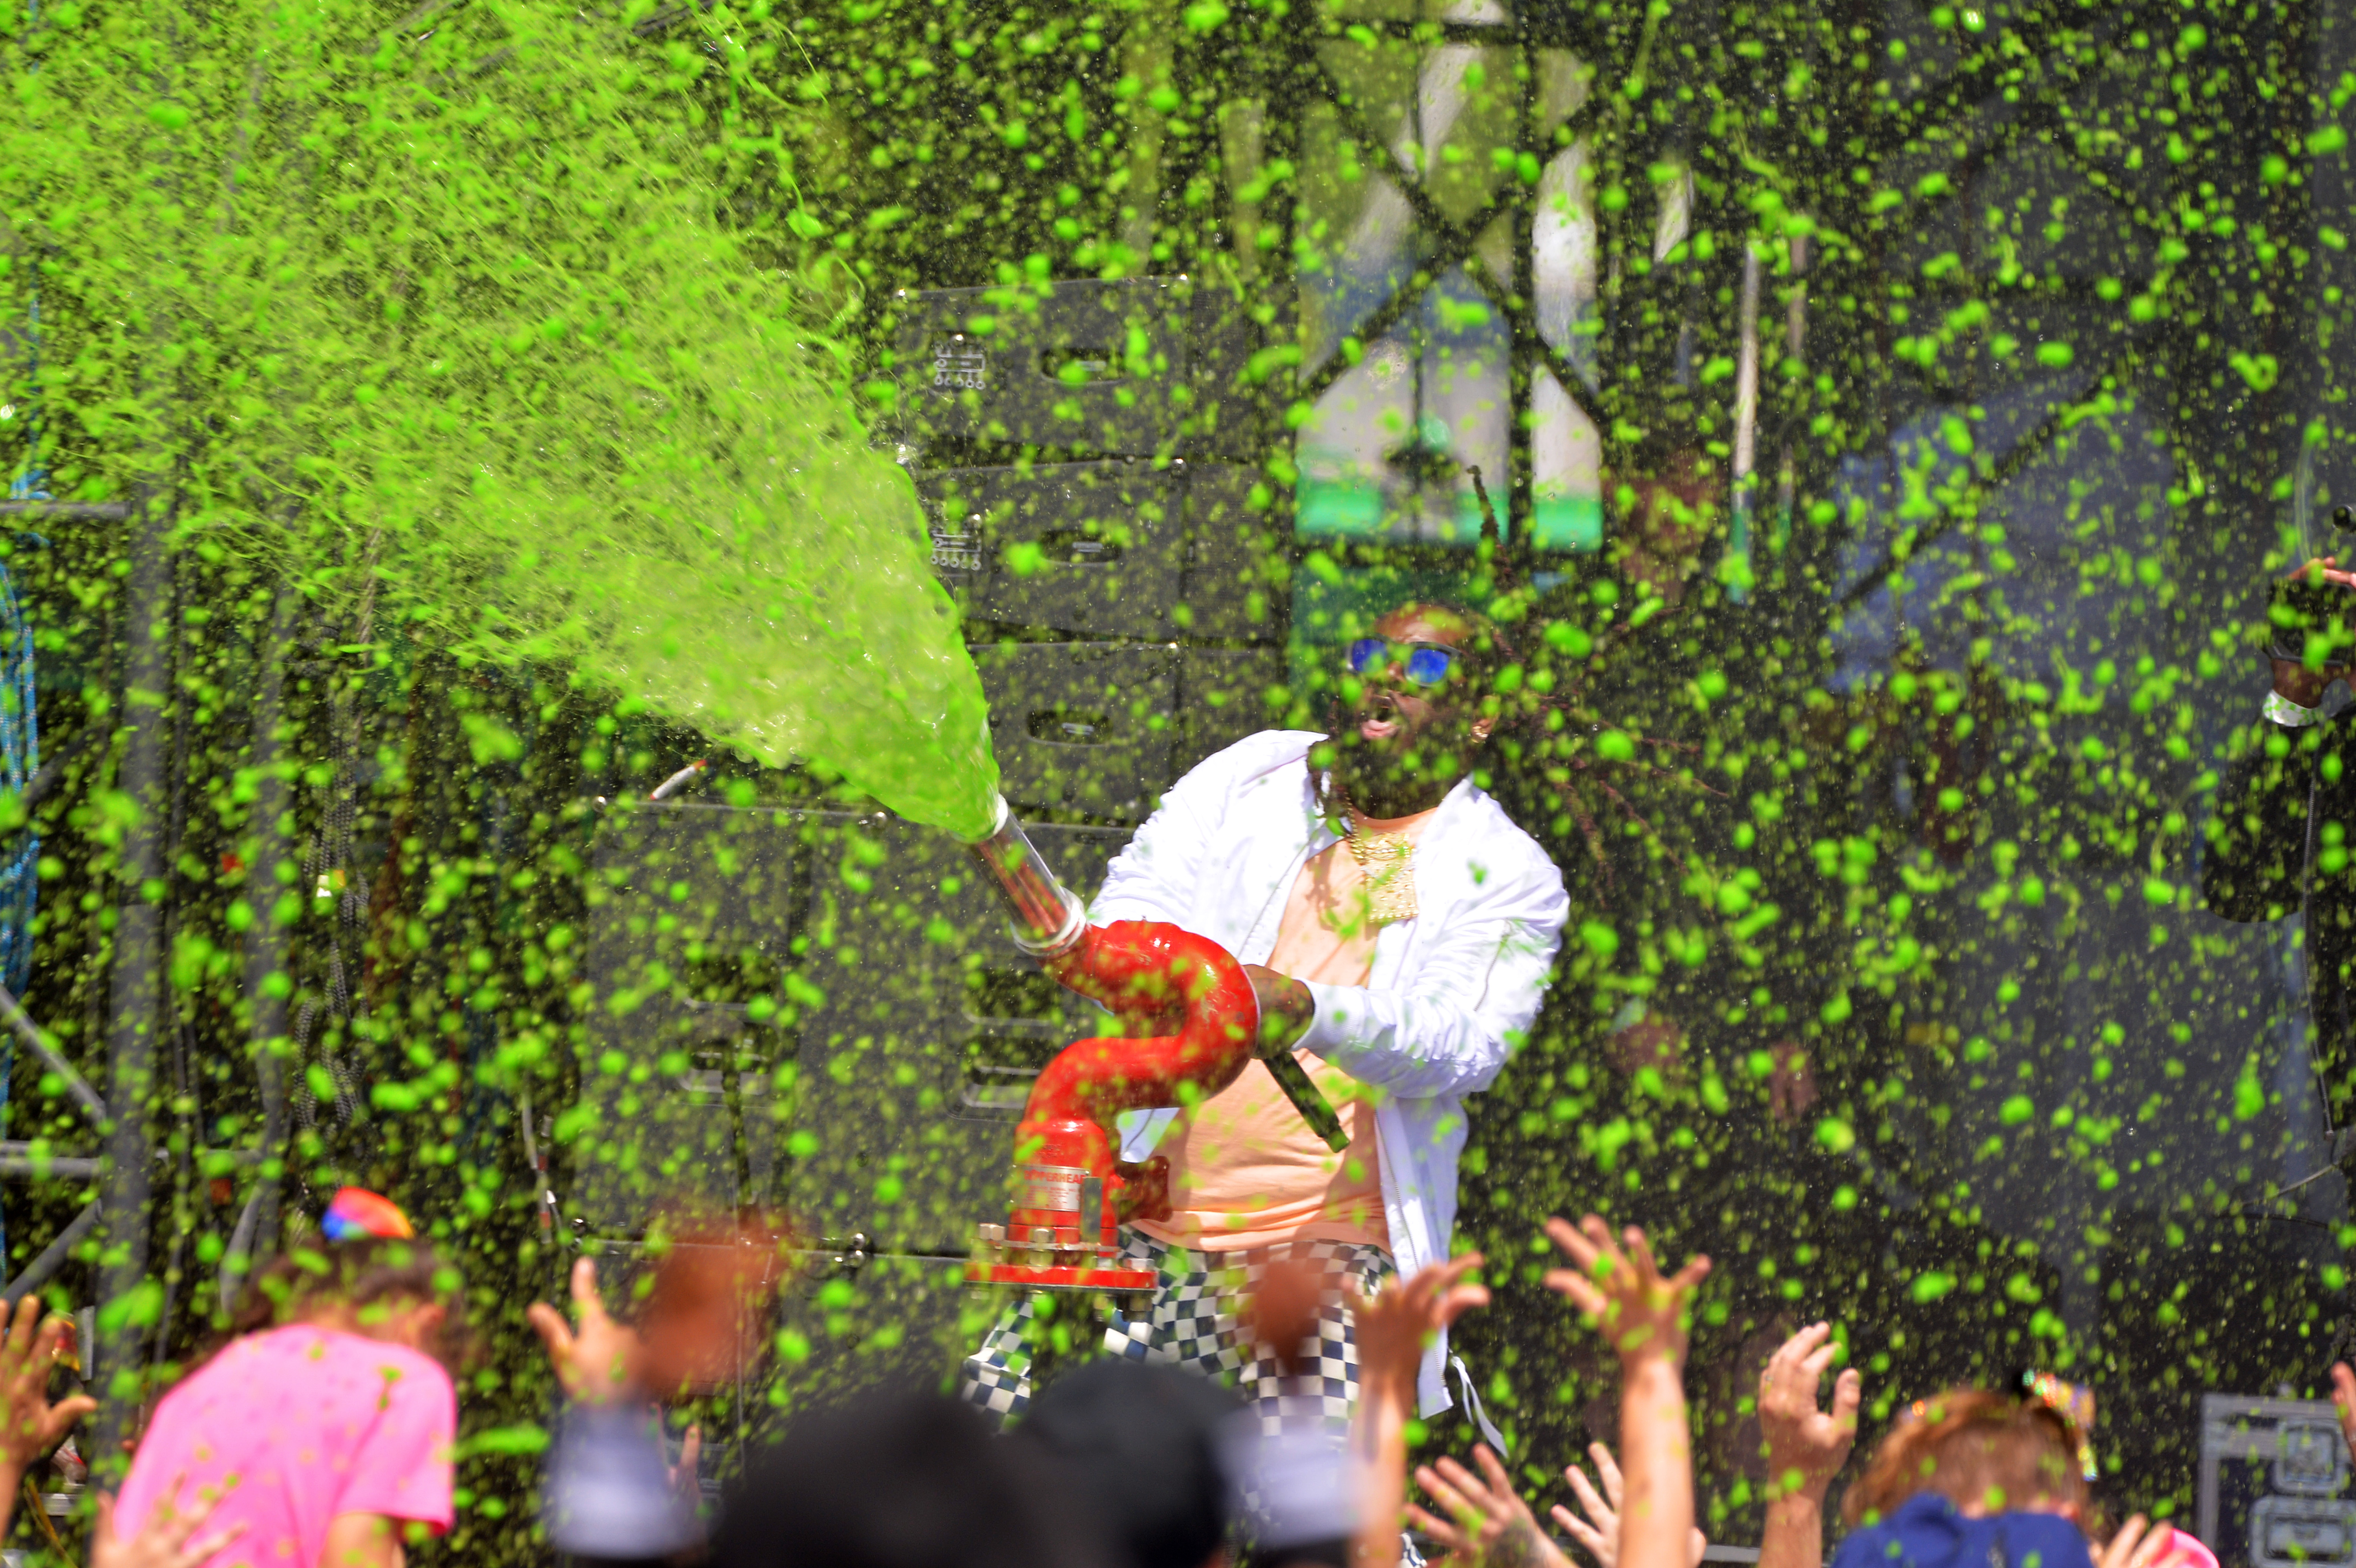 Nickelodeon's Second Annual SlimeFest At Huntington Bank Pavilion In Chicago - Show